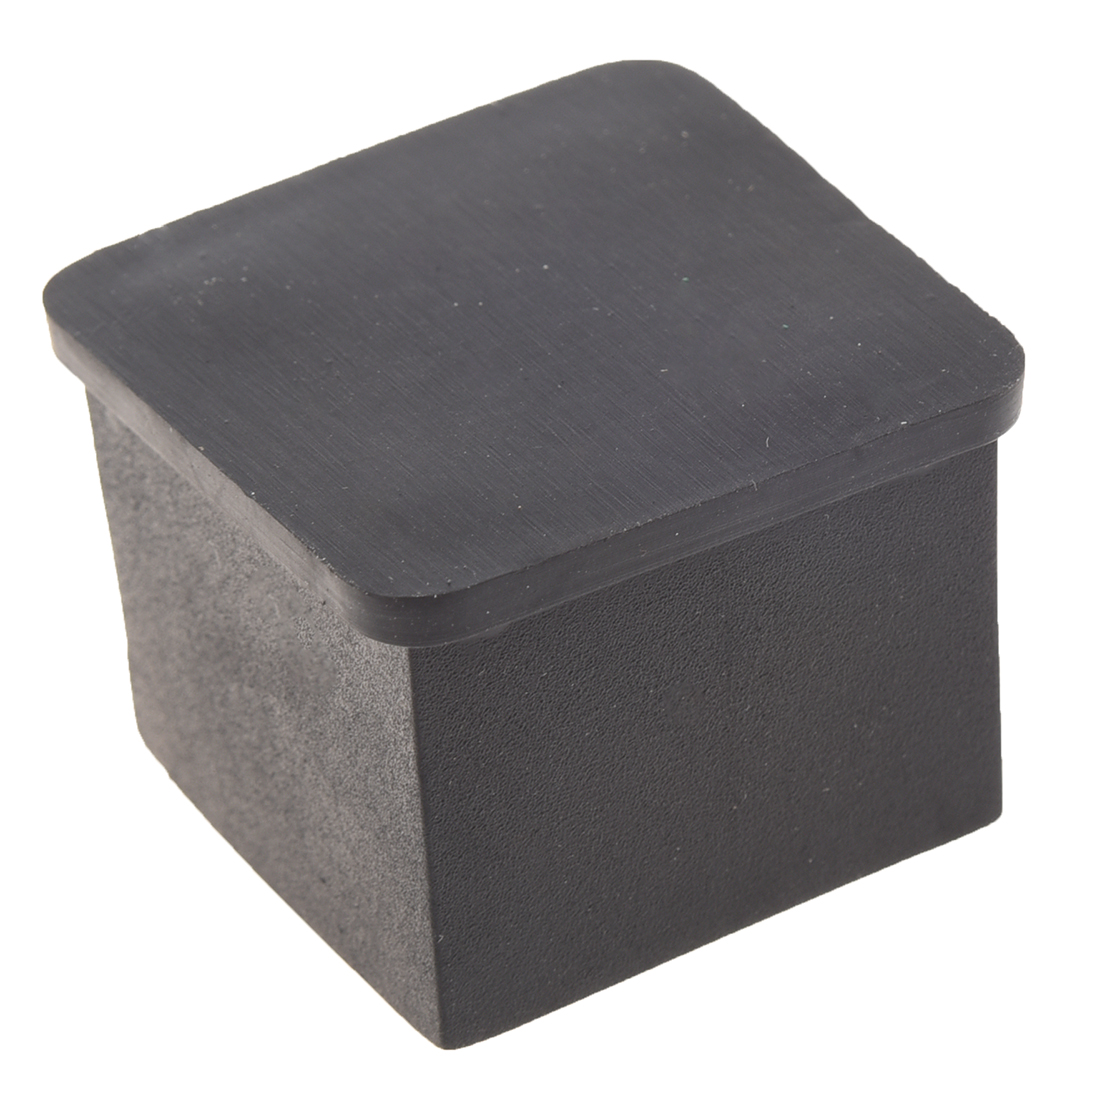 Hot Sale 15Pcs Black Rubber 30mmx30mm Square Chair Foot Cover Chair Leg Caps